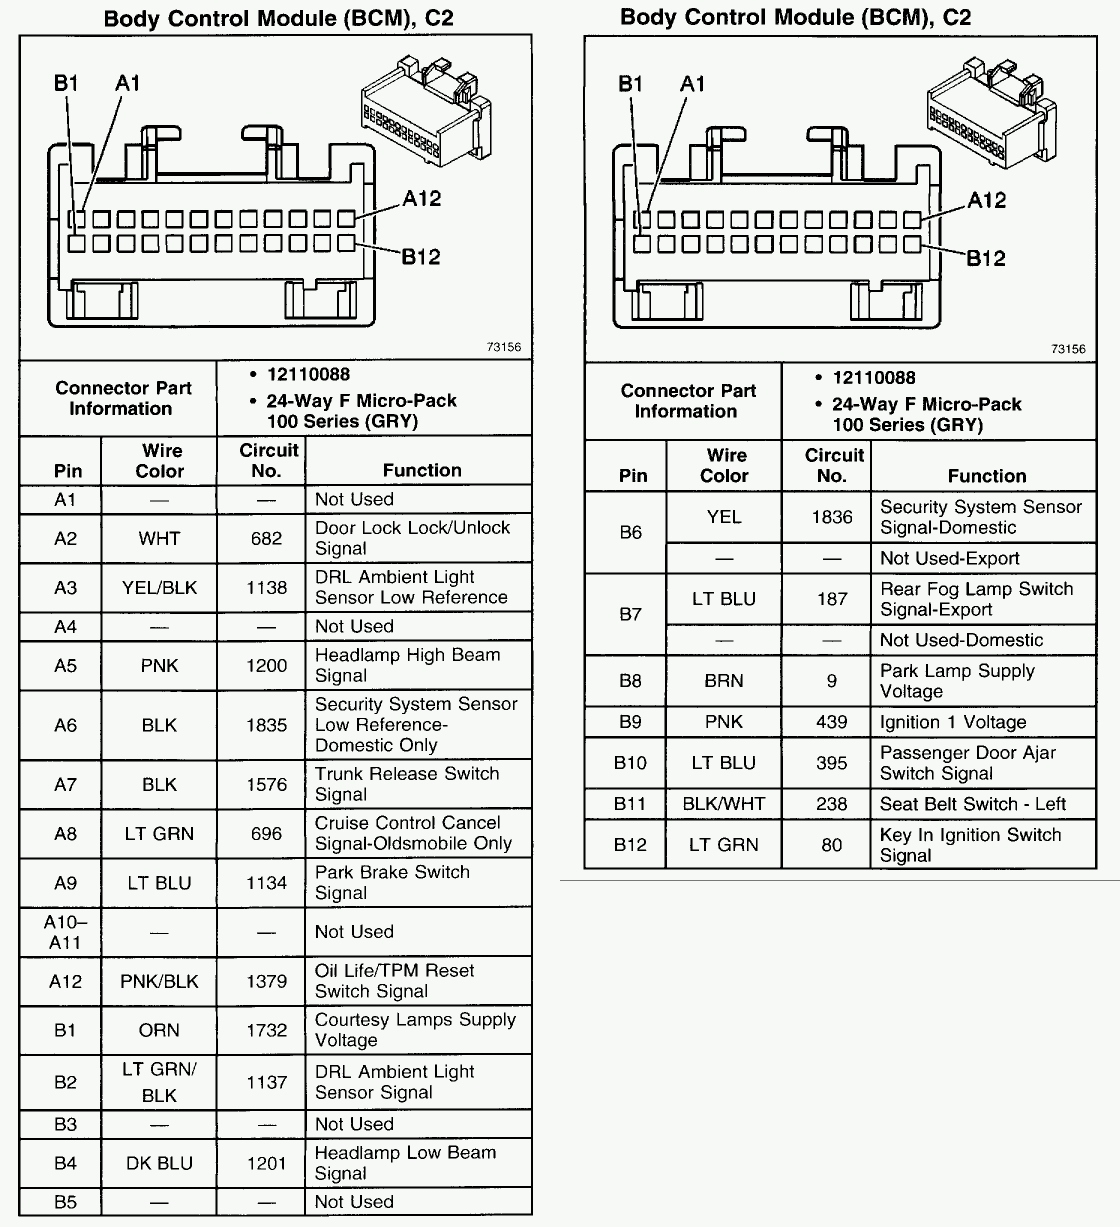 generac transfer switch diagram with 06 Trailblazer Wiring Schematics on BackupGenerators likewise Asco Automatic Transfer Switch Wiring Diagram besides Onan Rv Generator Parts Diagram moreover A Manual Transfer Switch Wiring as well Index.